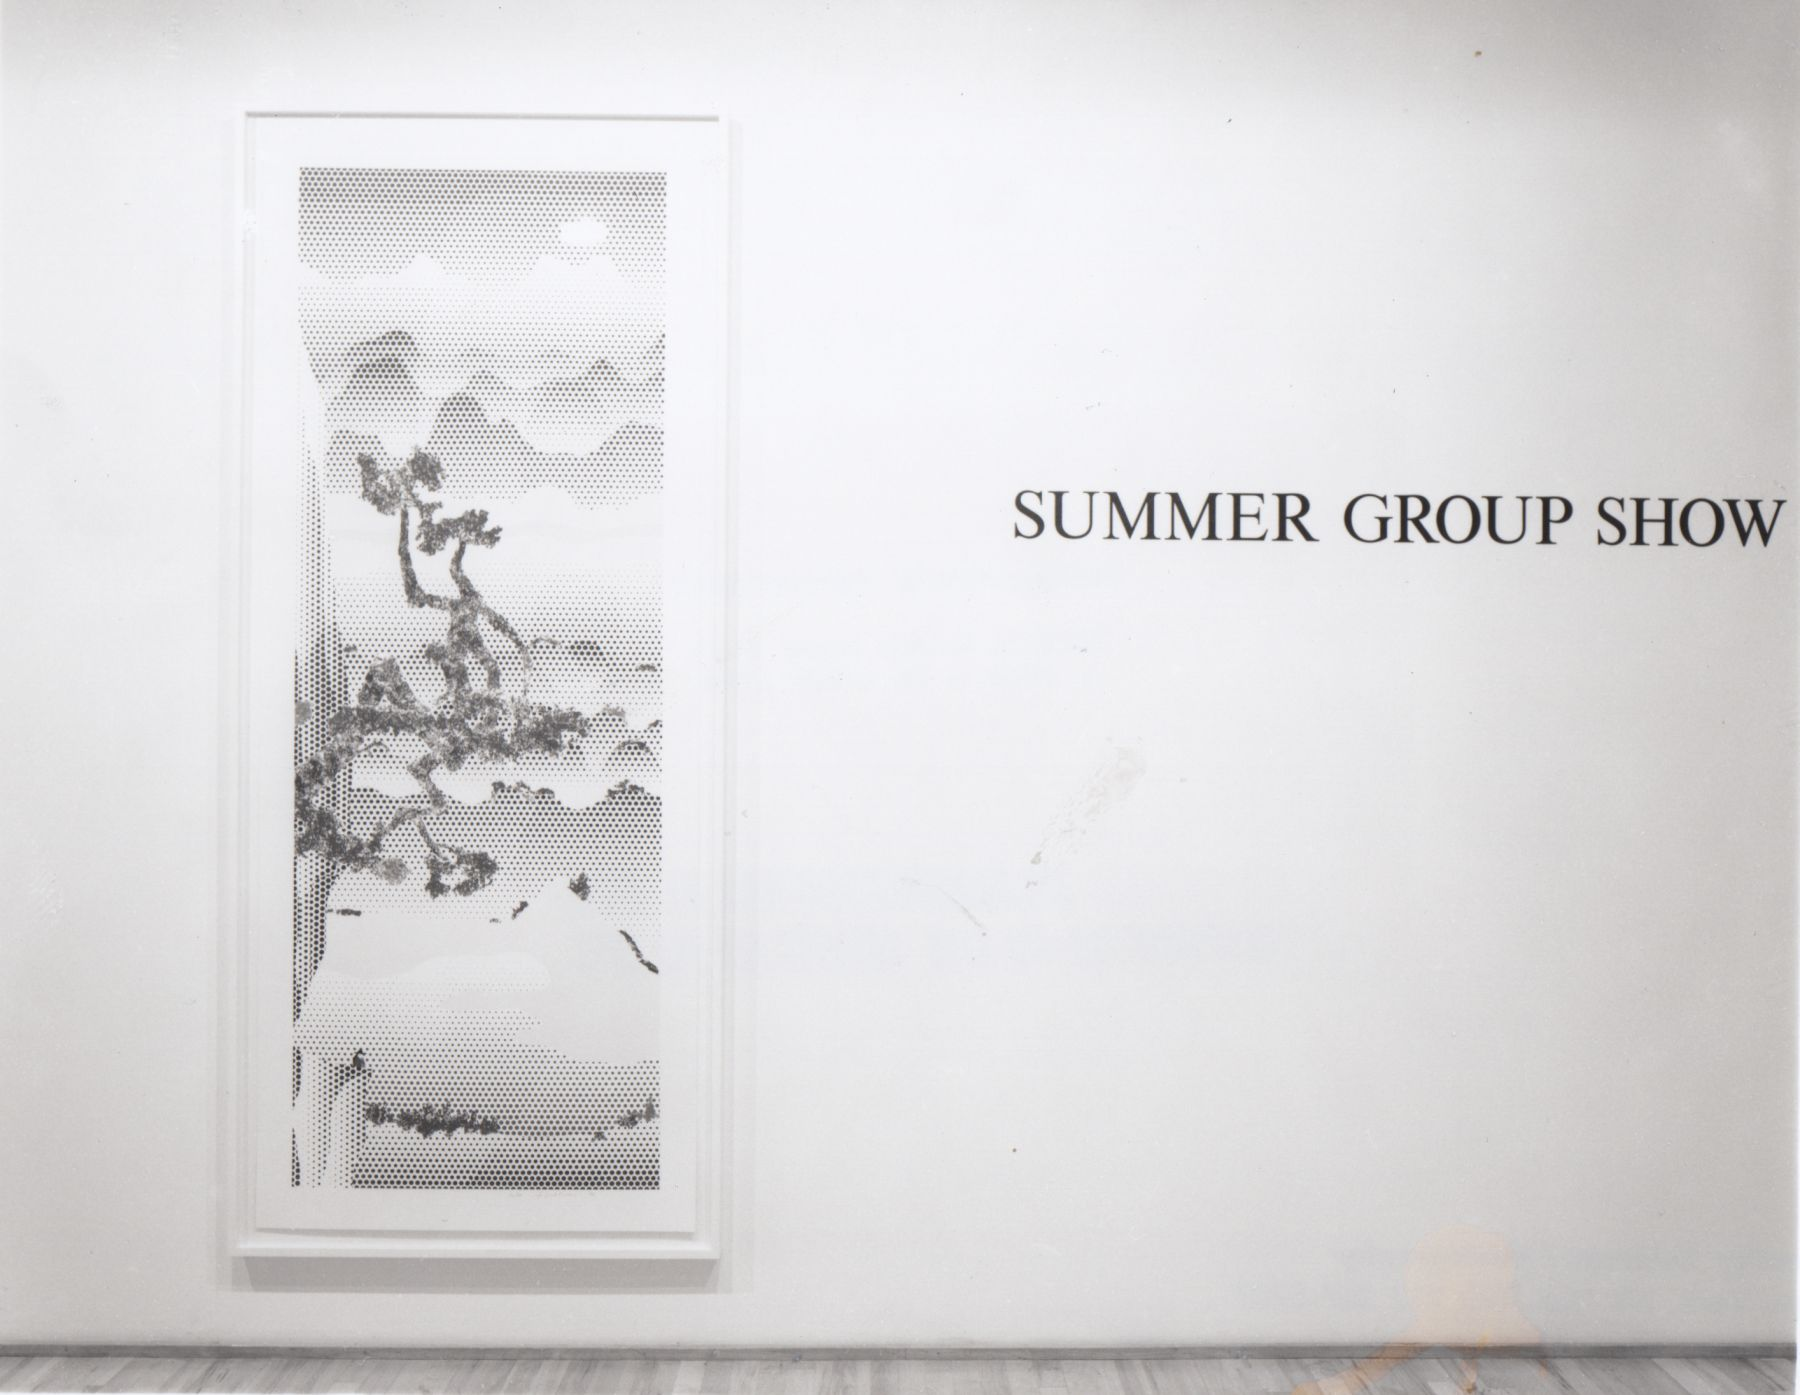 Installation view, Summer Group Show, 578 BROADWAY